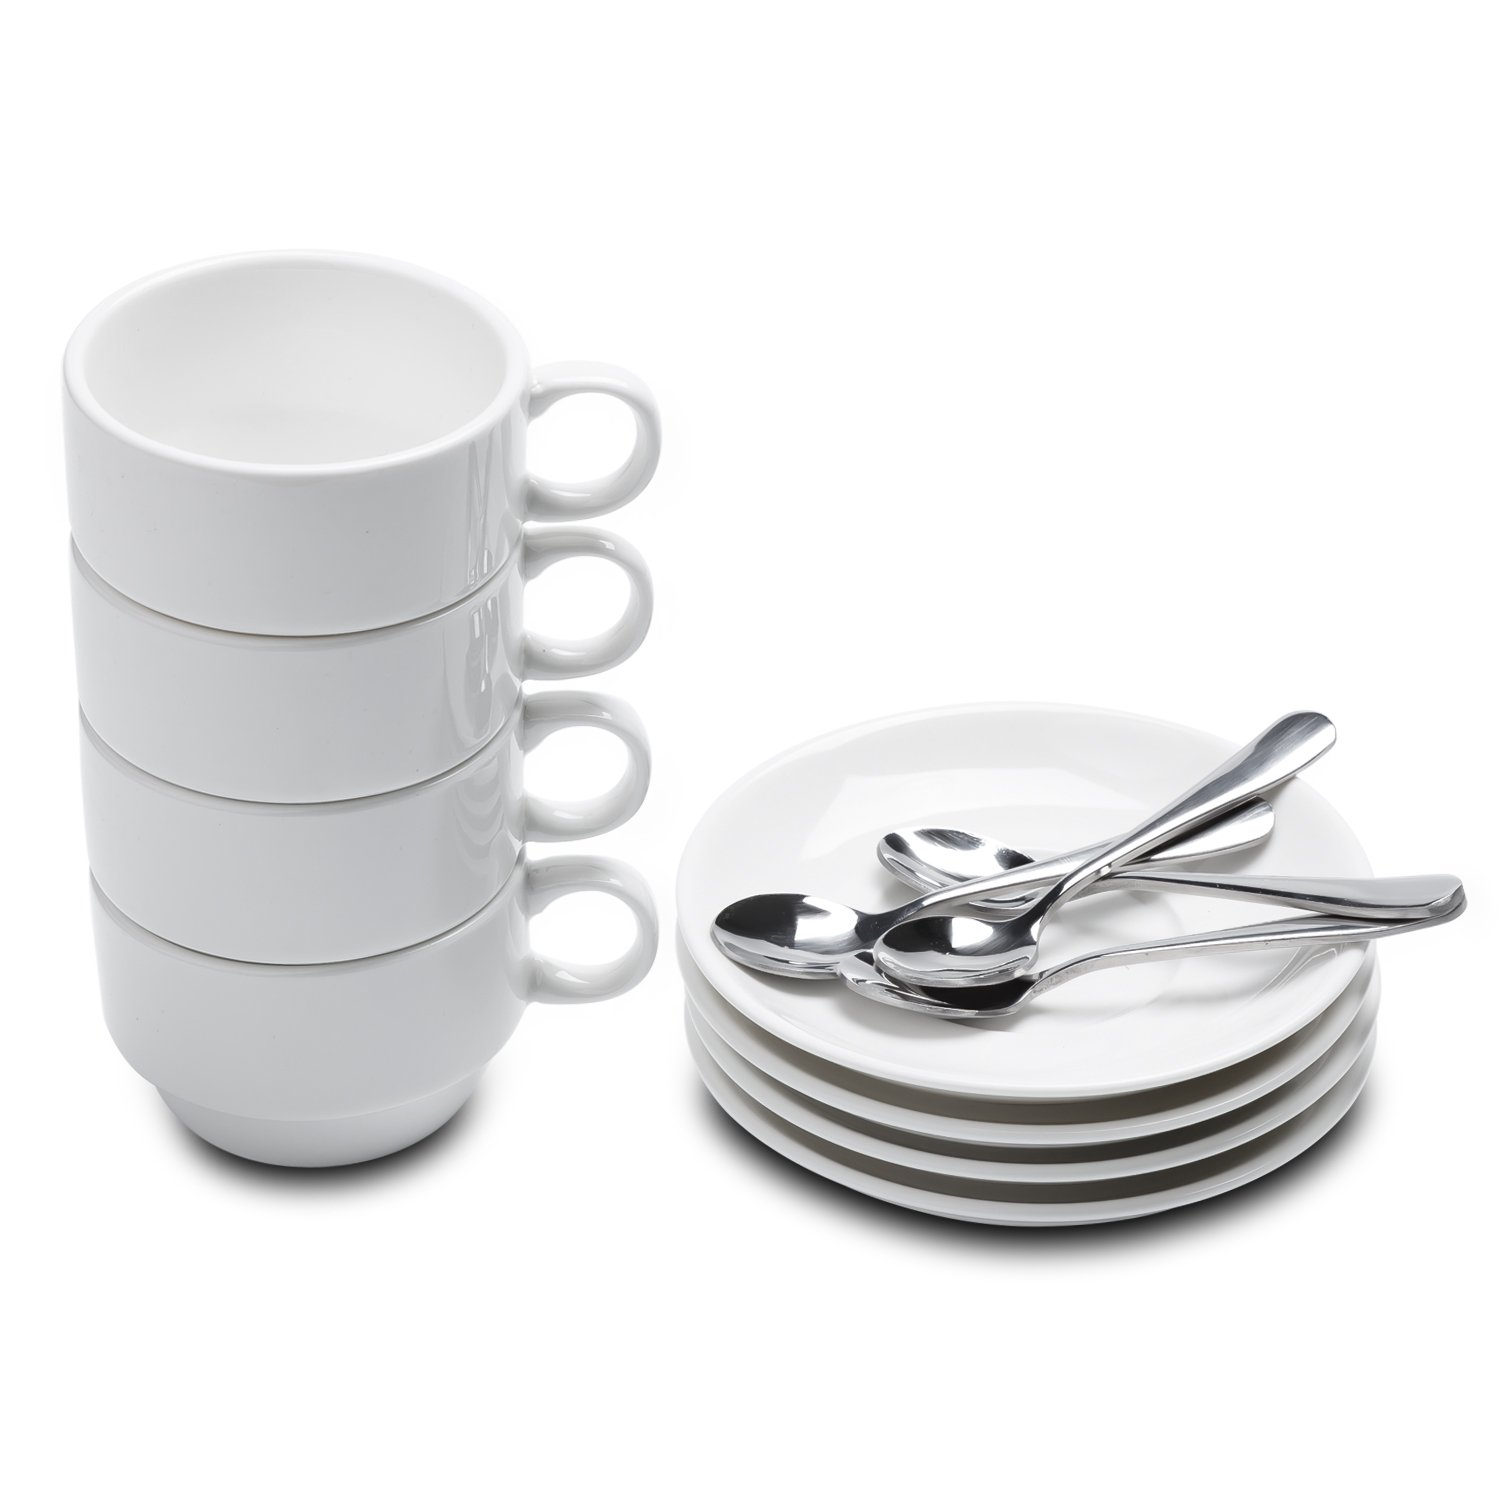 Aozita Stackable 2 5 Ounce Demitasse Protective